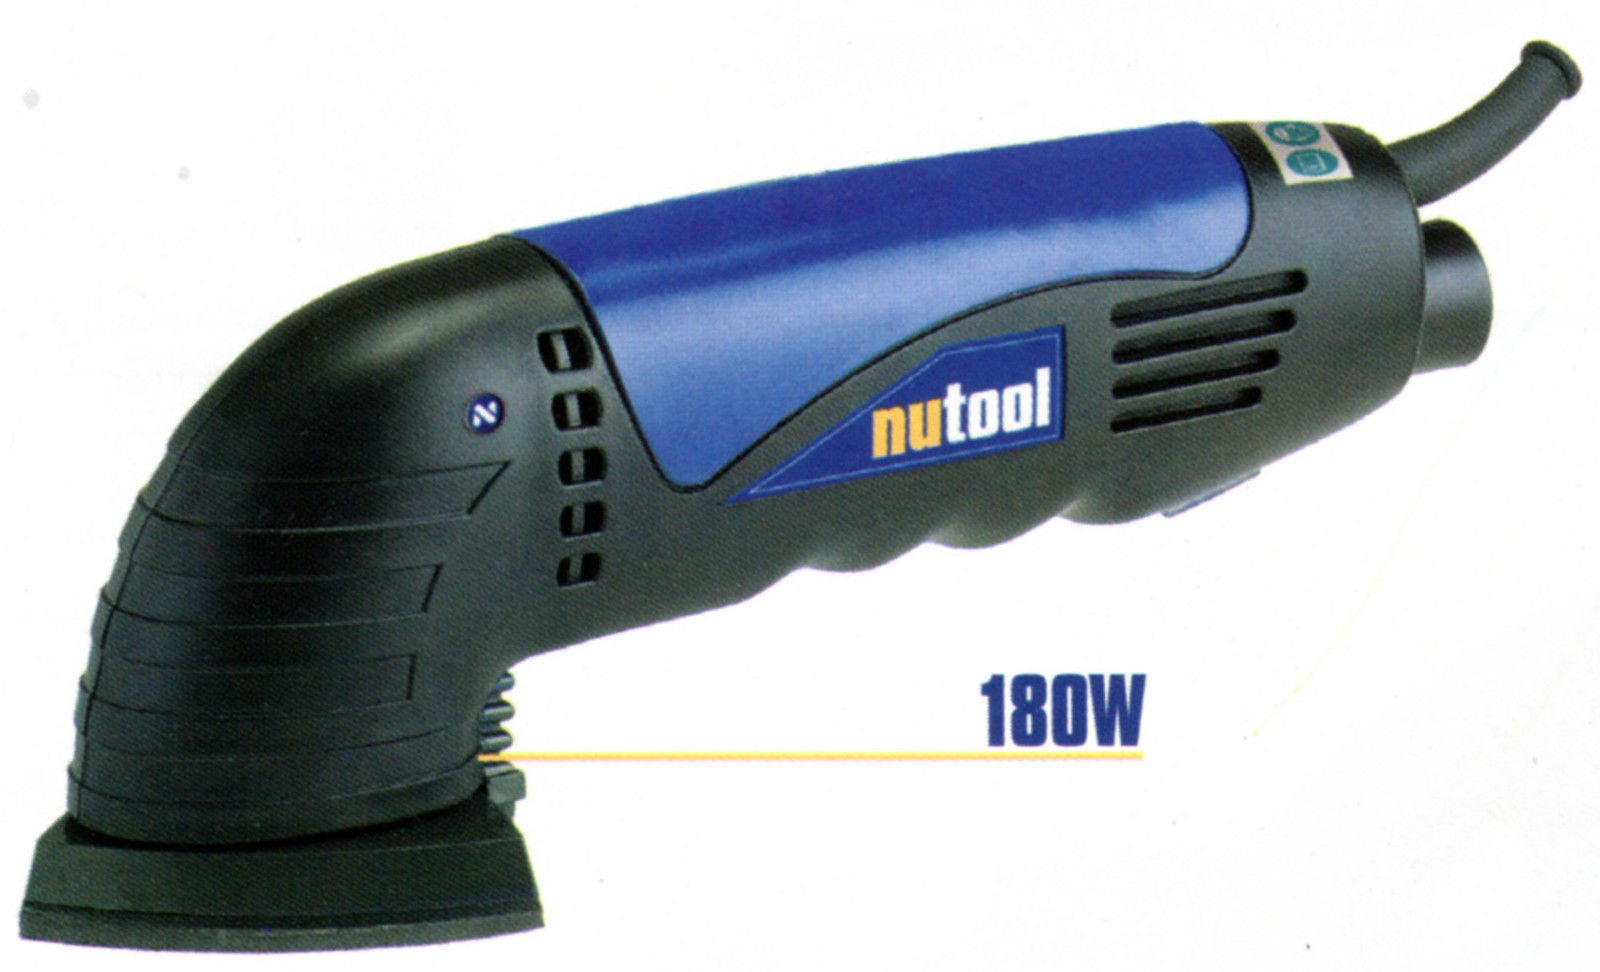 Levigatrice Triangolare 180W Nutool NDS180